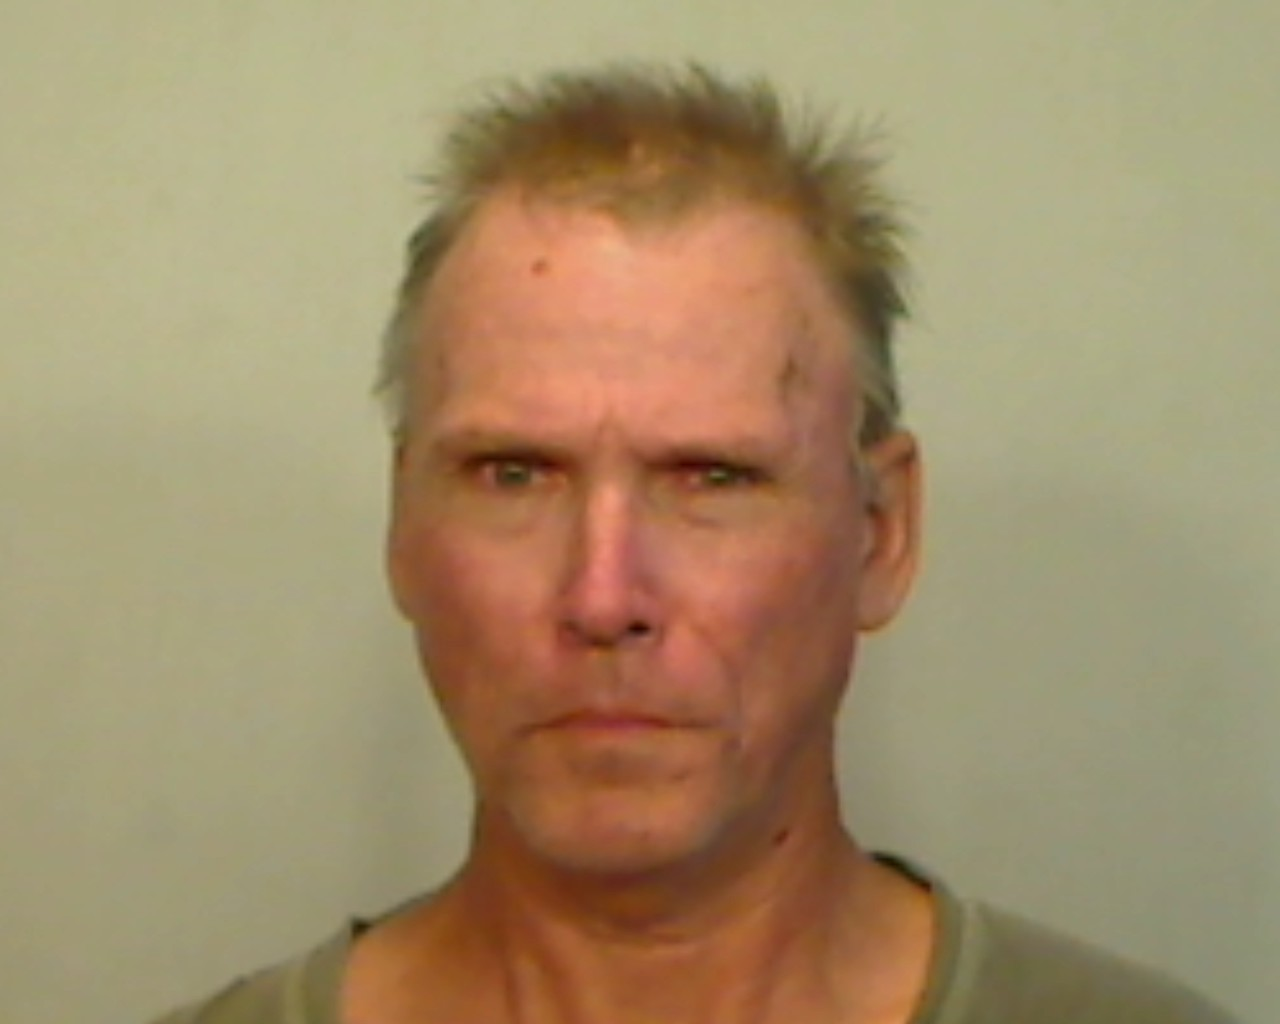 Michael Manning, 58, is seen in a May 3, 2019, booking photo released by the Monroe County Sheriff's Office in Florida.